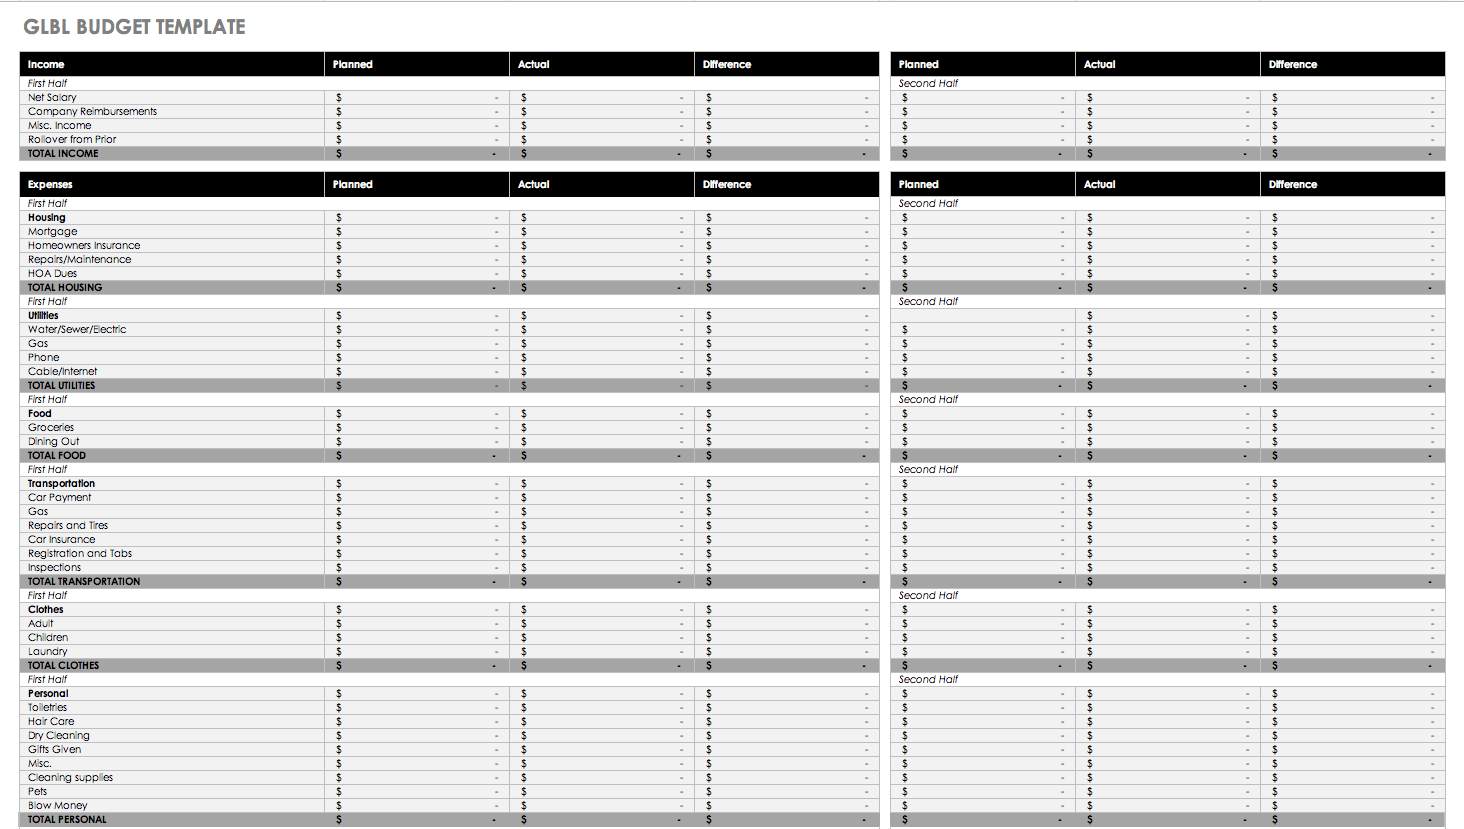 Zero Based Budget Spreadsheet Intended For Free Budget Templates In Excel For Any Use